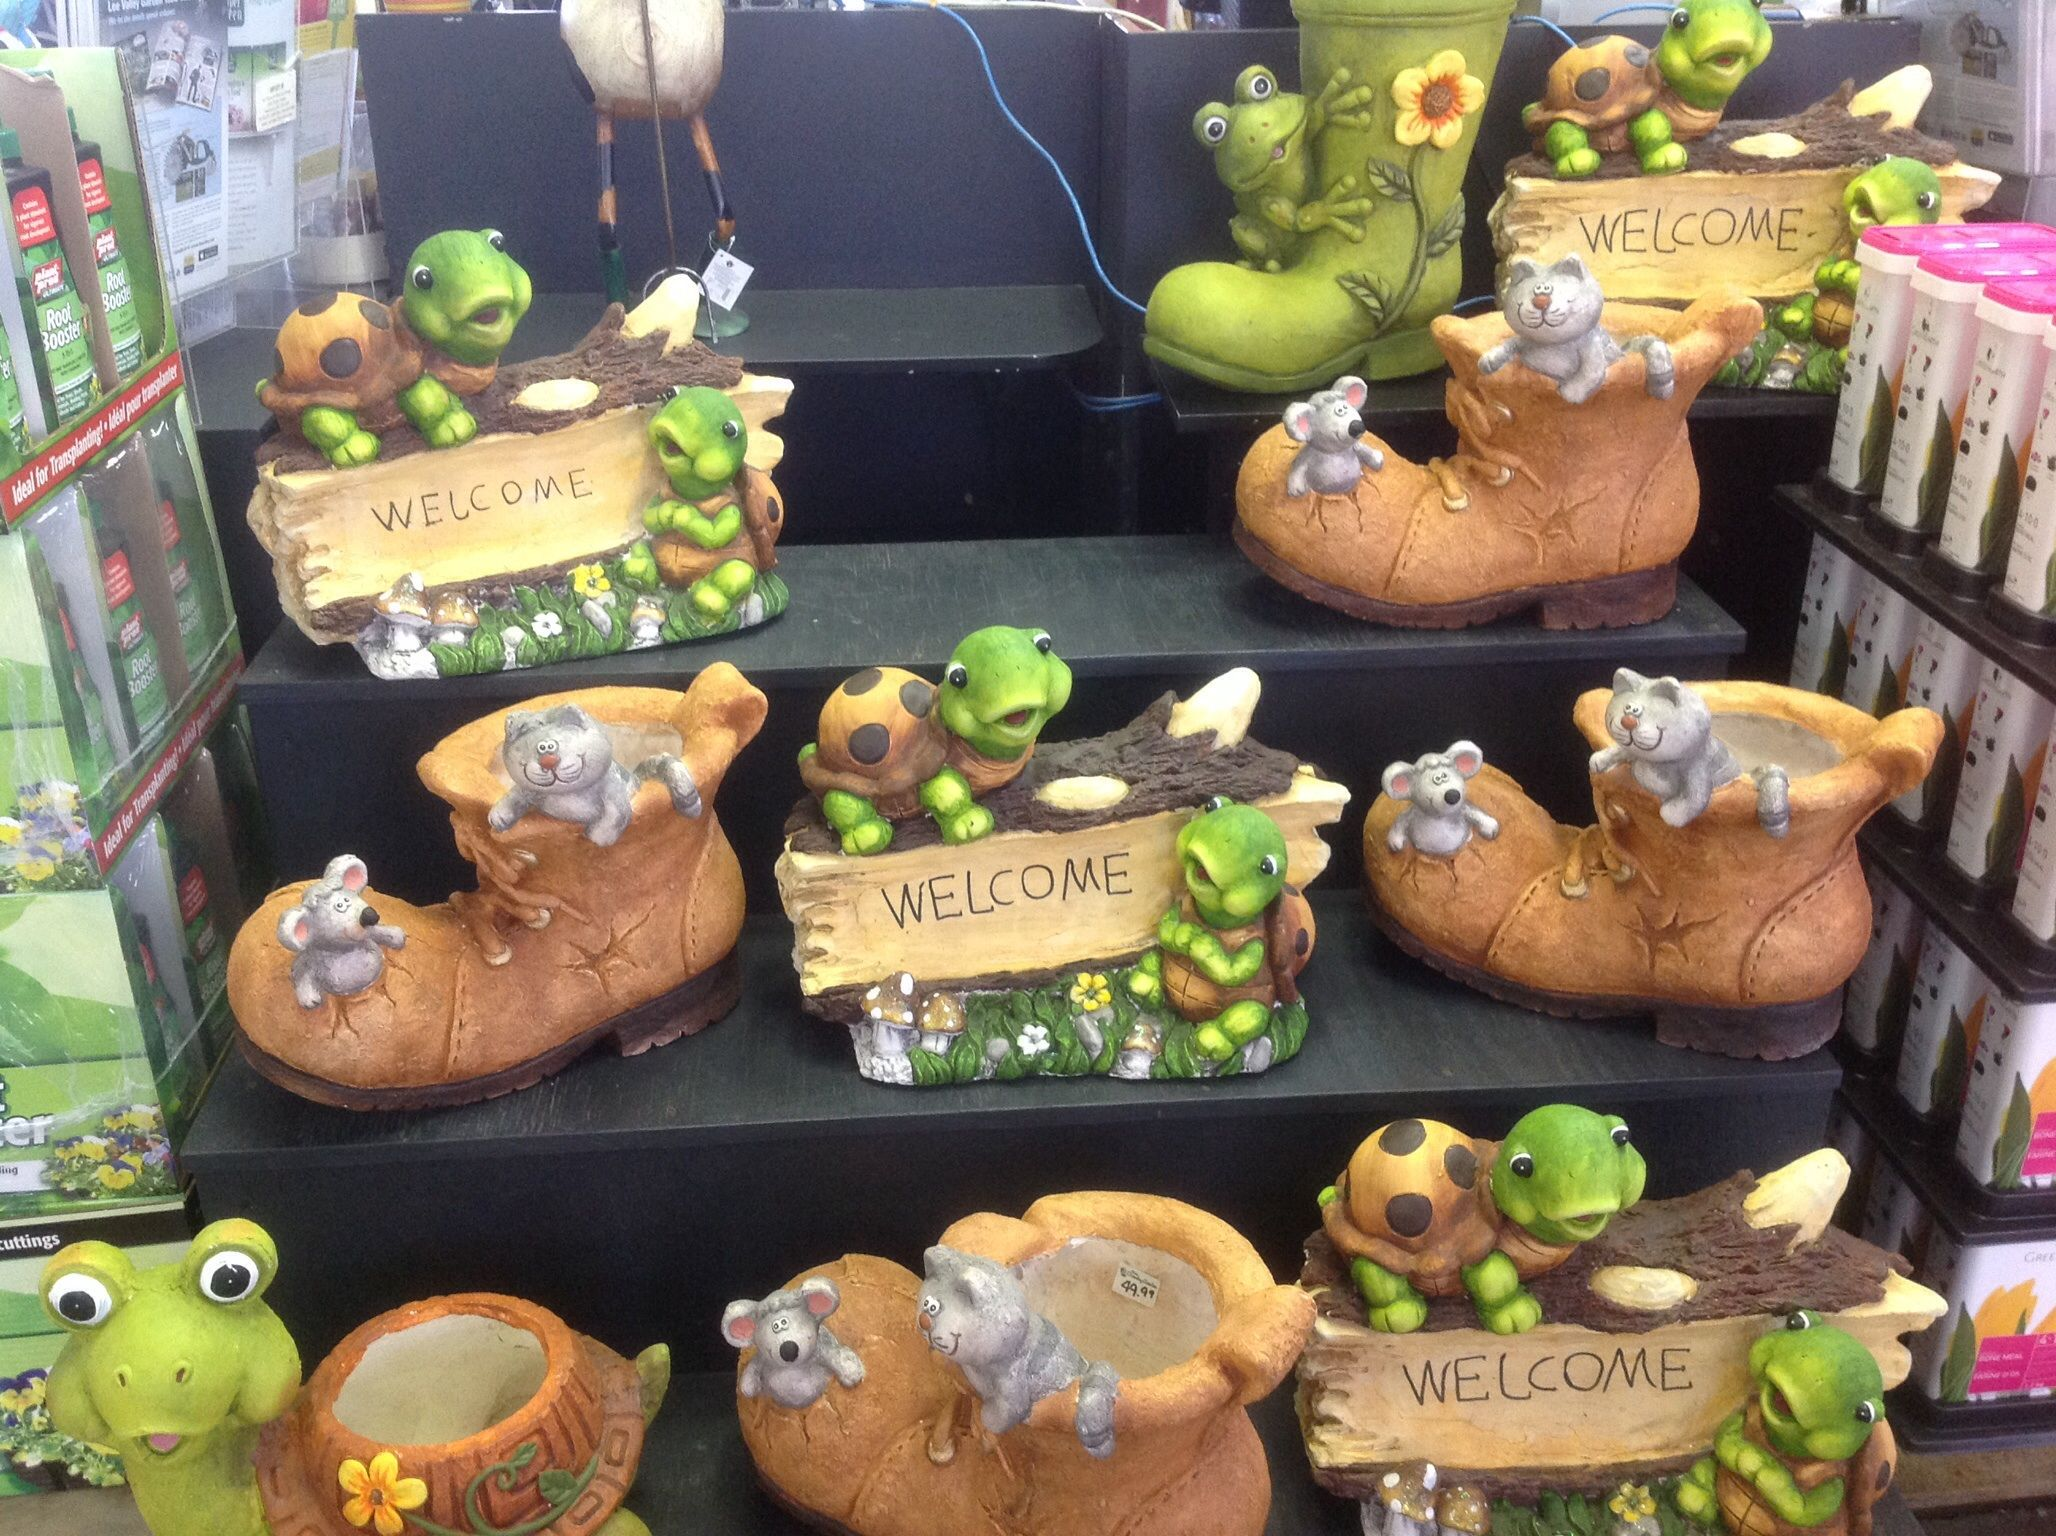 Great garden decor. Nice gift for anyone at any time.